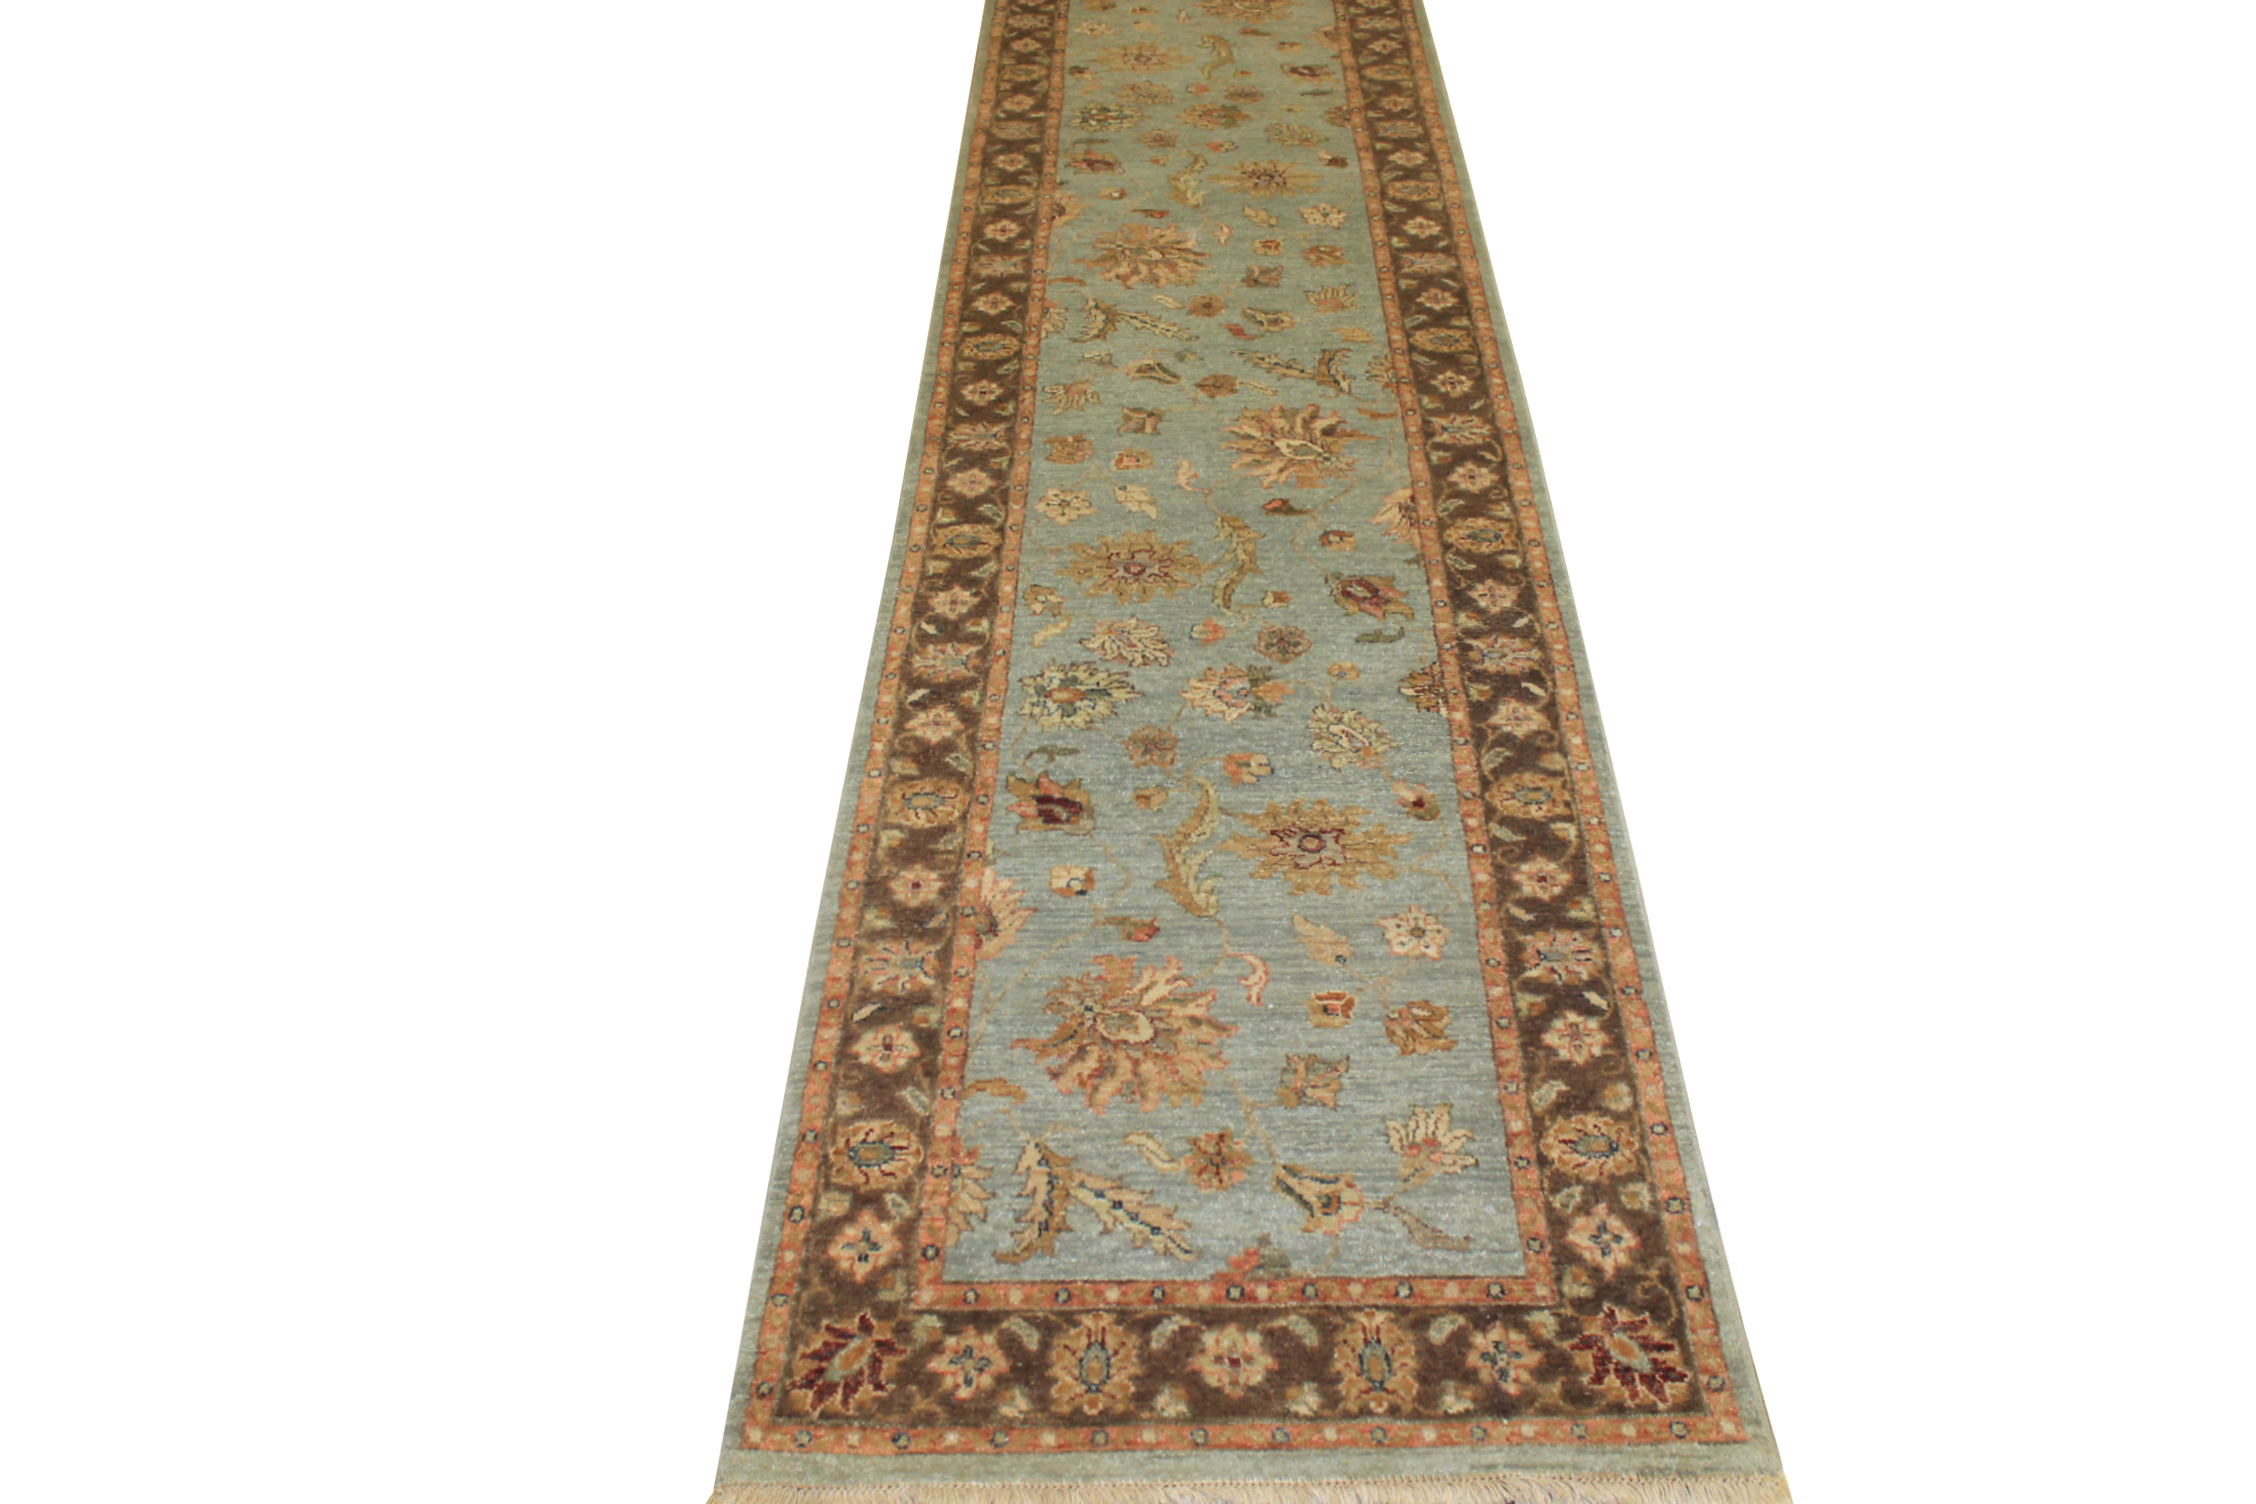 10 ft. Runner Traditional Hand Knotted Wool Area Rug - MR14079